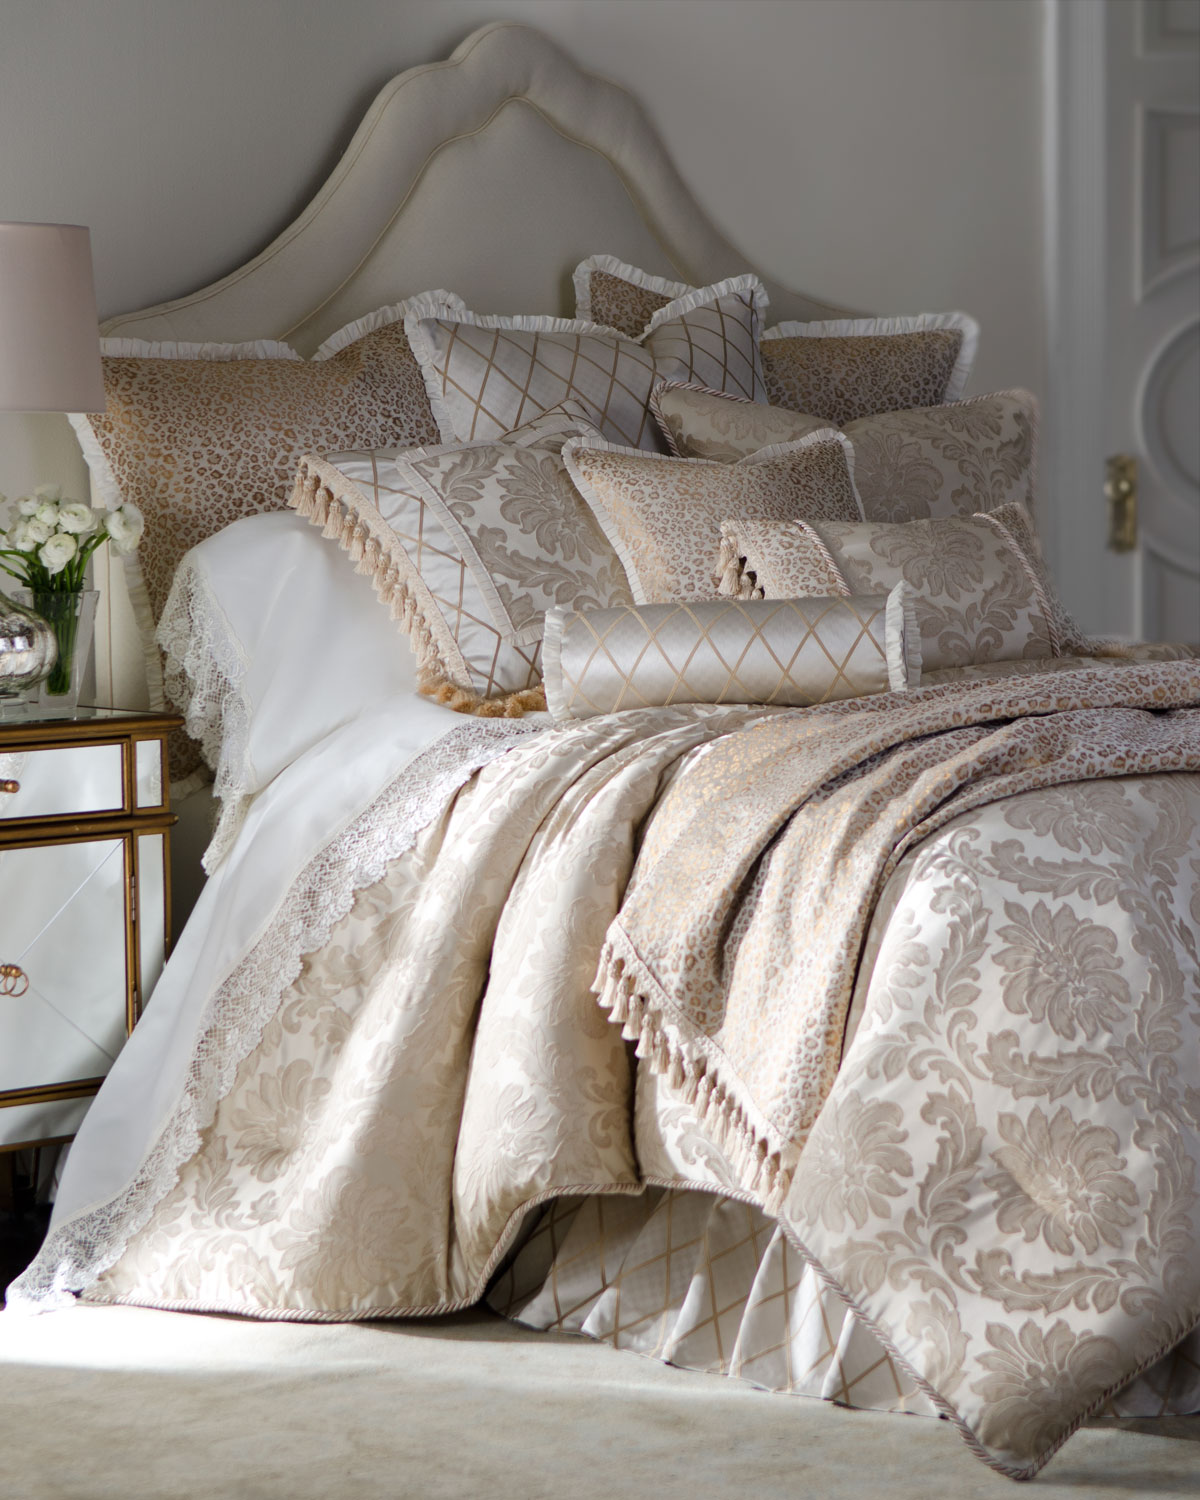 Darby King Damask Duvet Cover